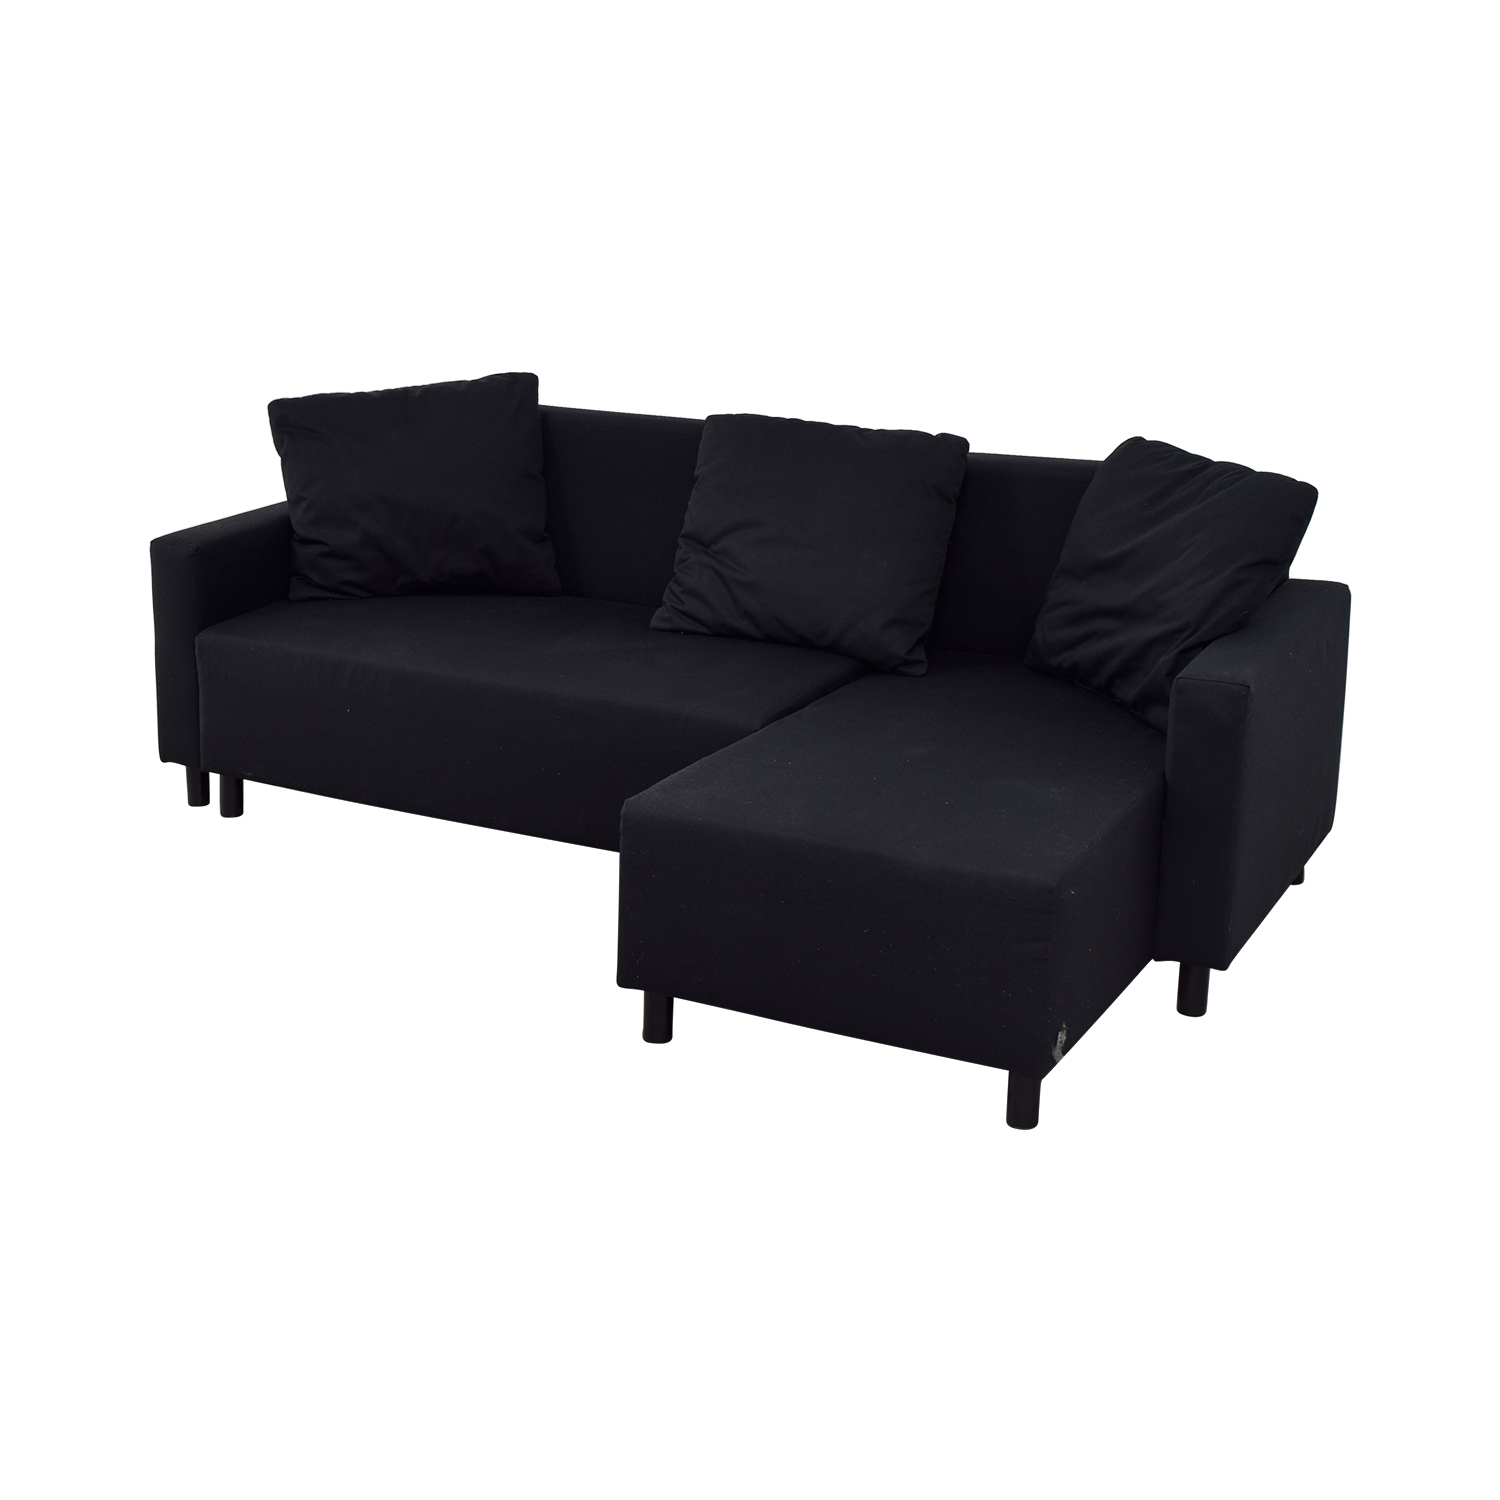 31 Off Ikea Black Sleeper